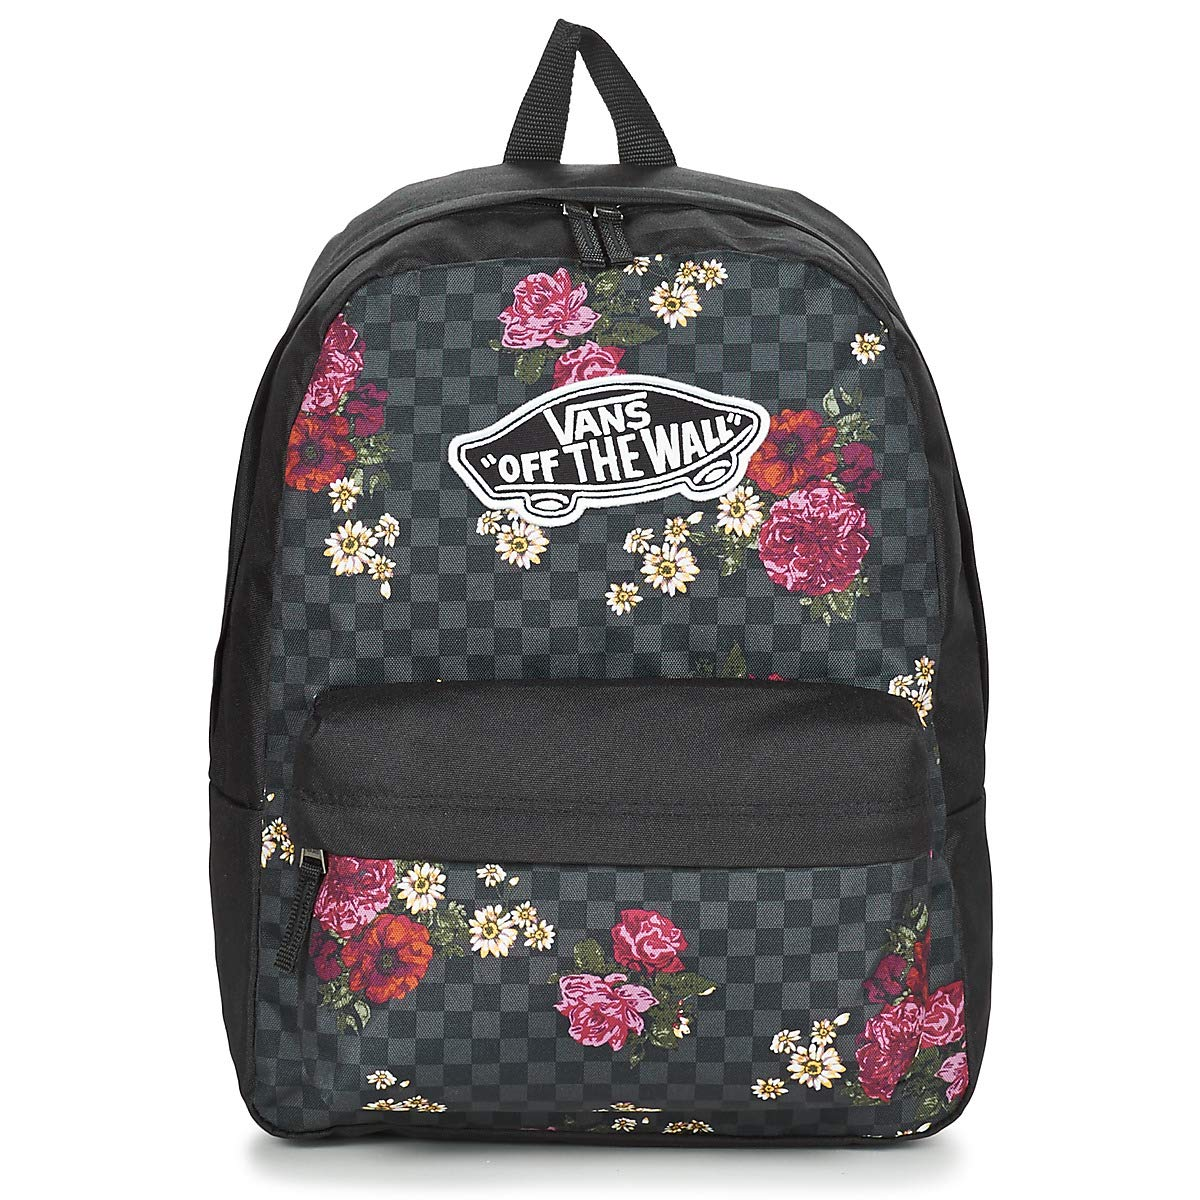 2vans donna mickey mouse